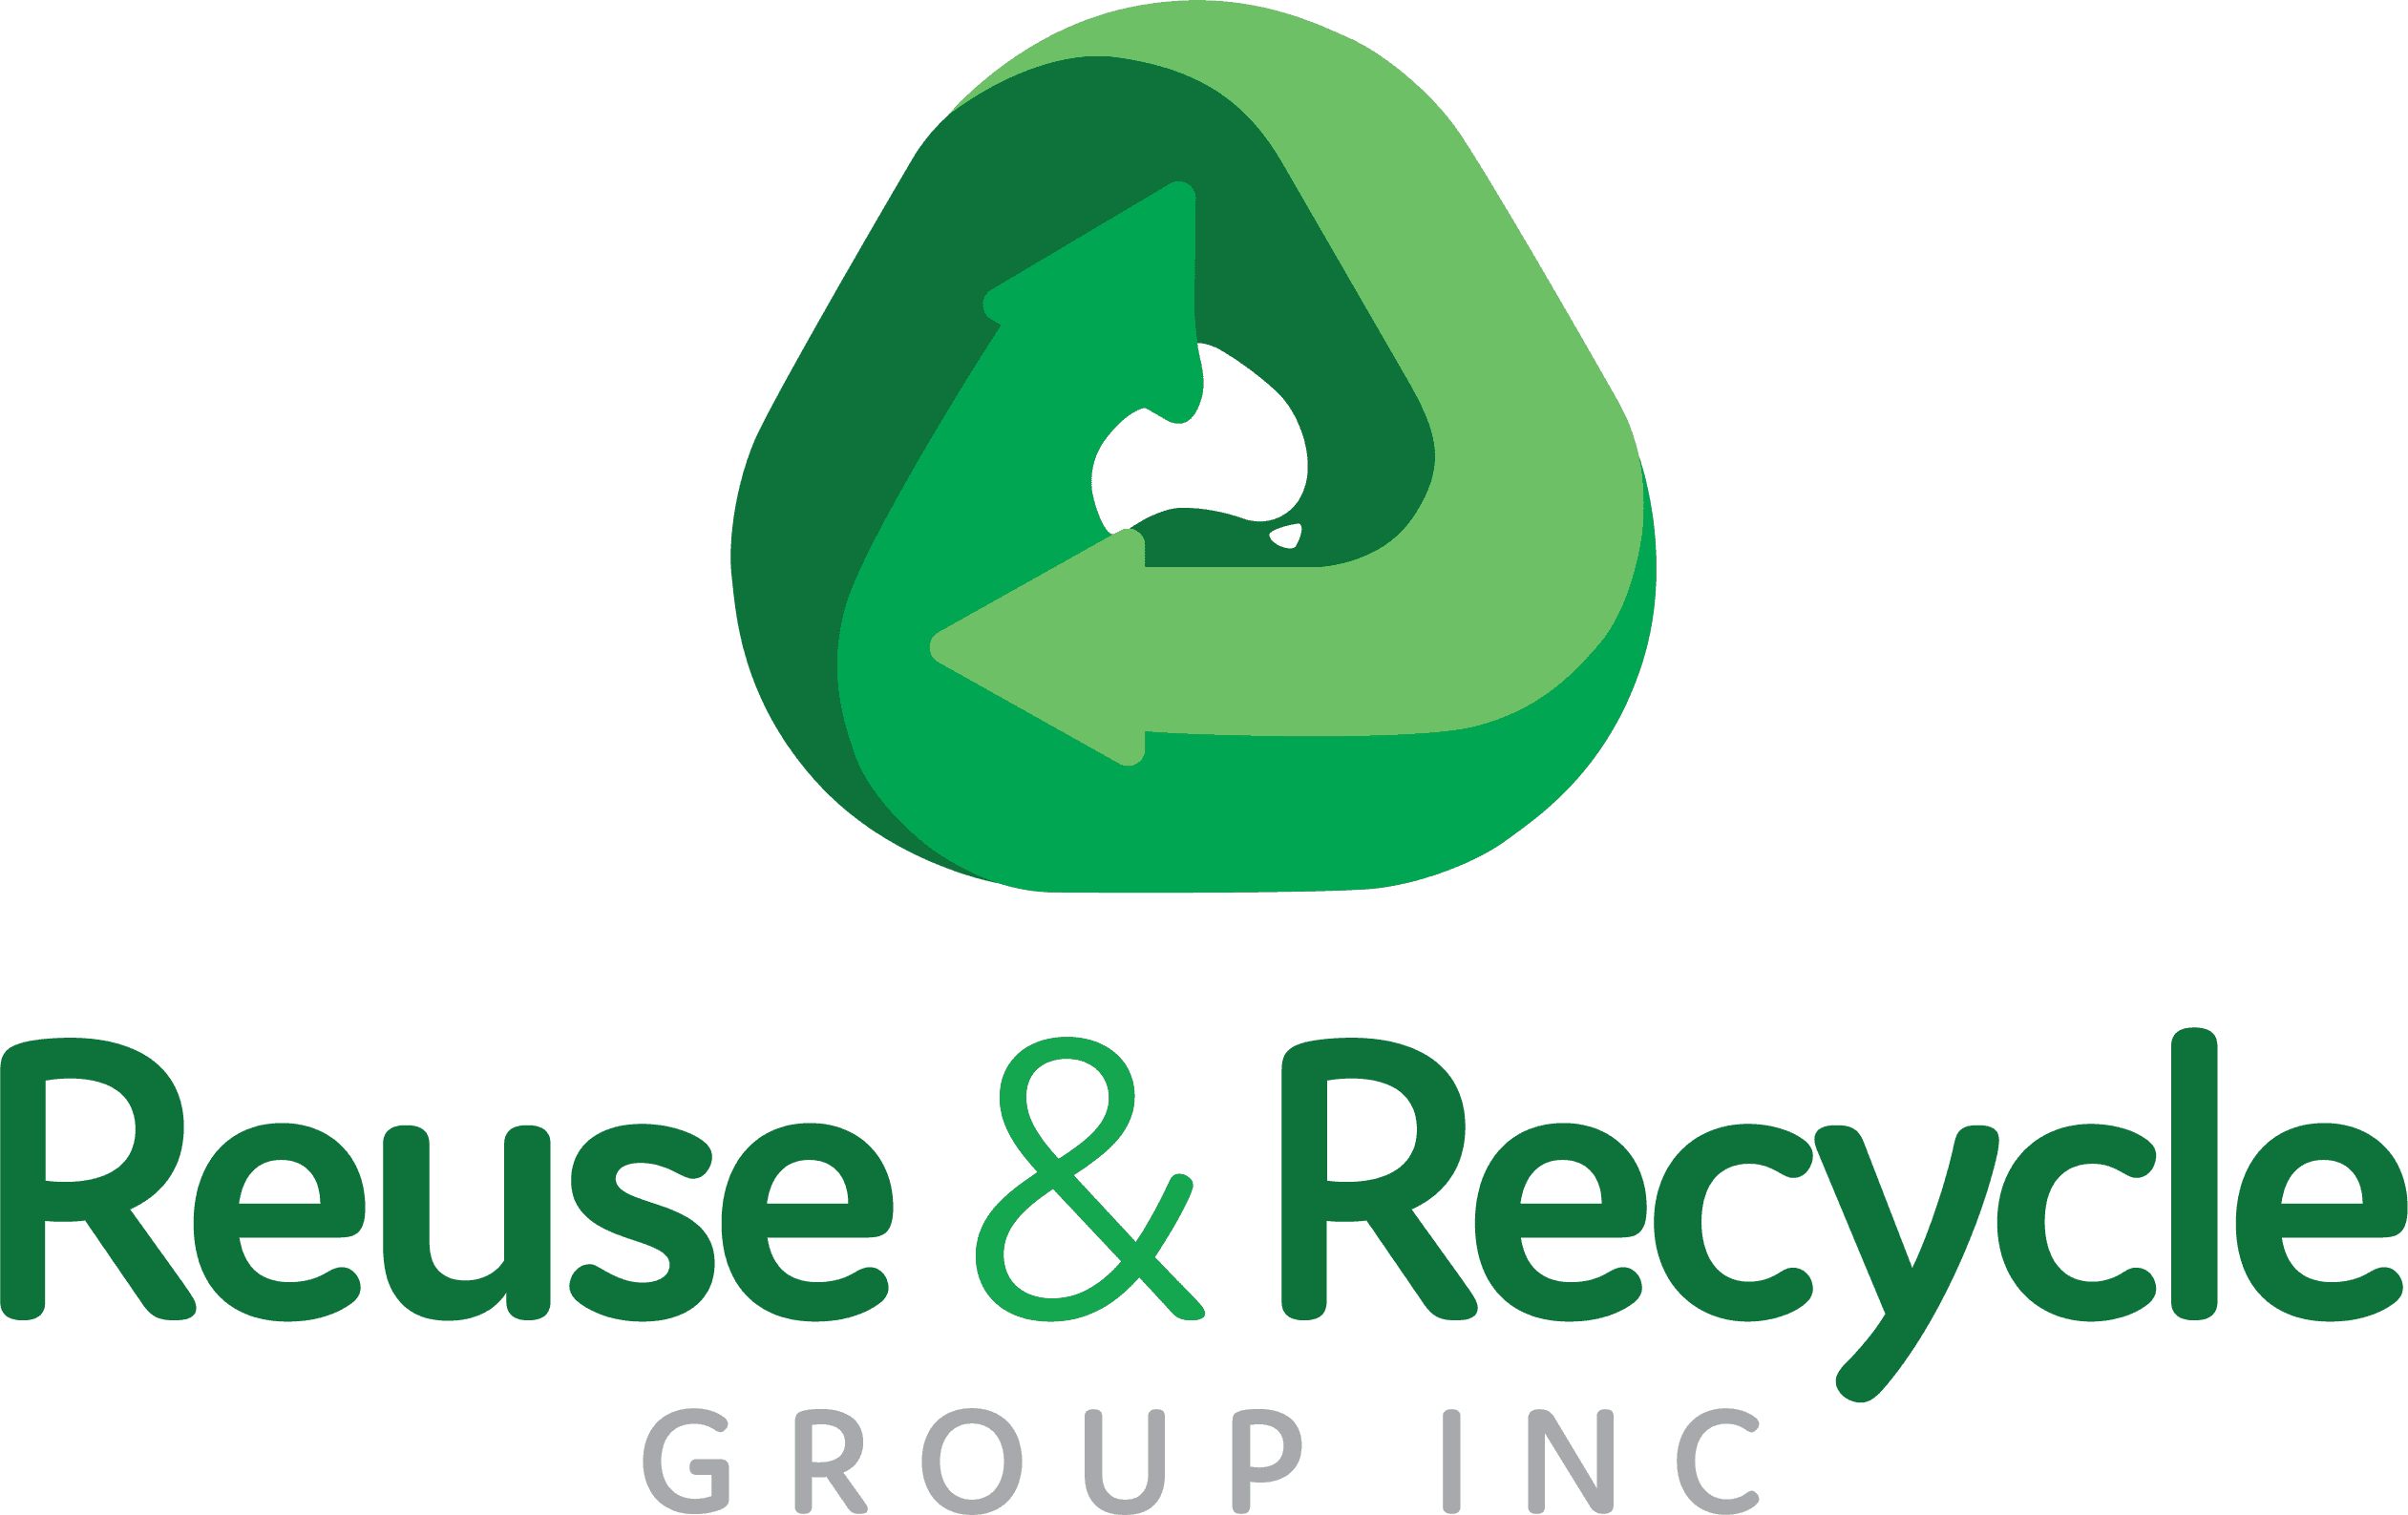 Reuse, Recycle & Community Recycle logo